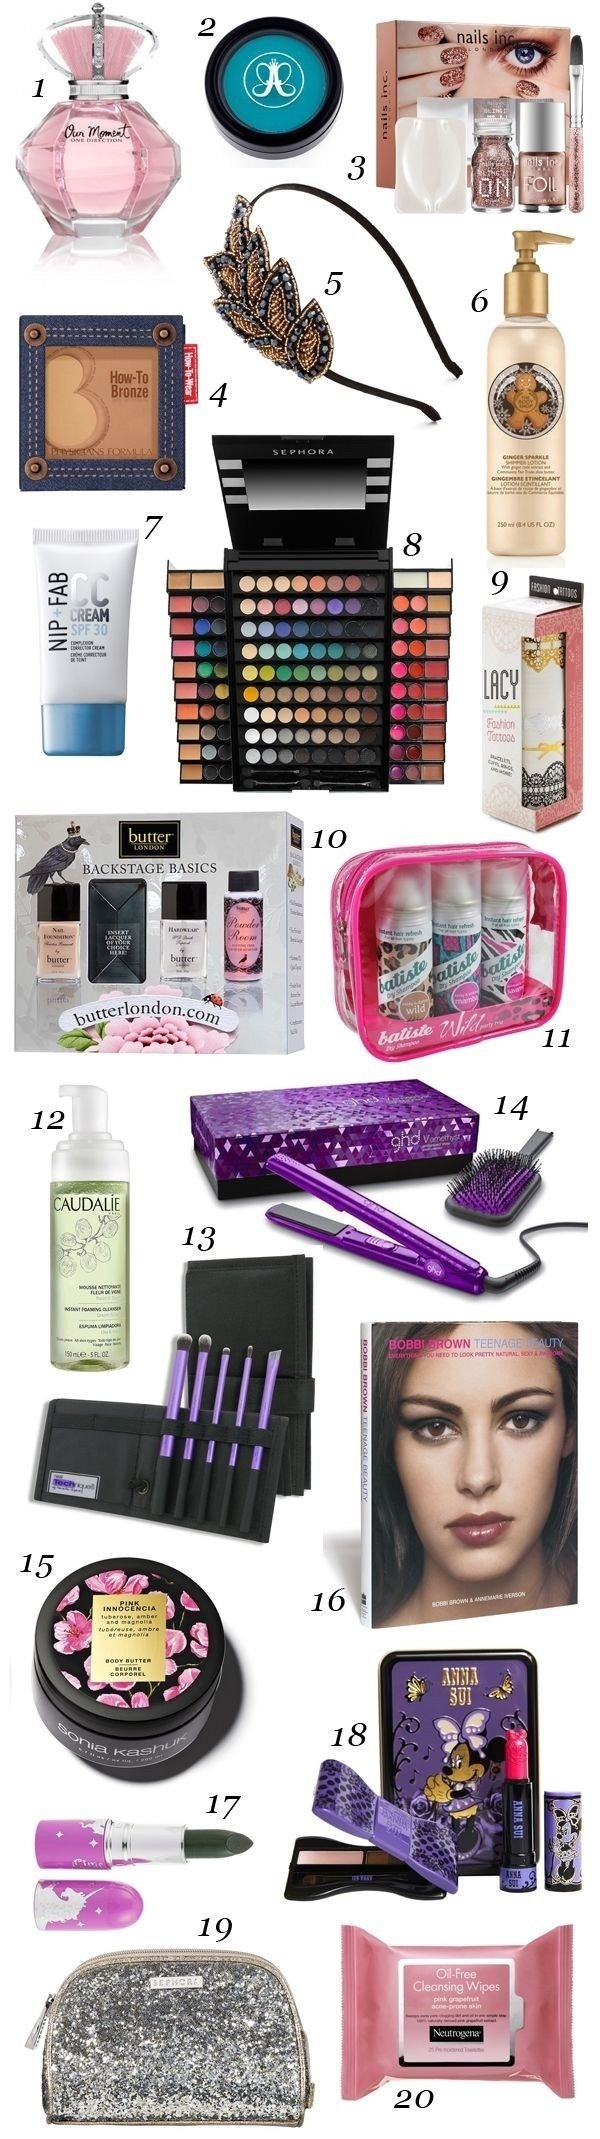 10 Fashionable Gift Ideas For A 15 Year Old Girl what to get a 16 year old girl for christmas eknom jo 4 2021